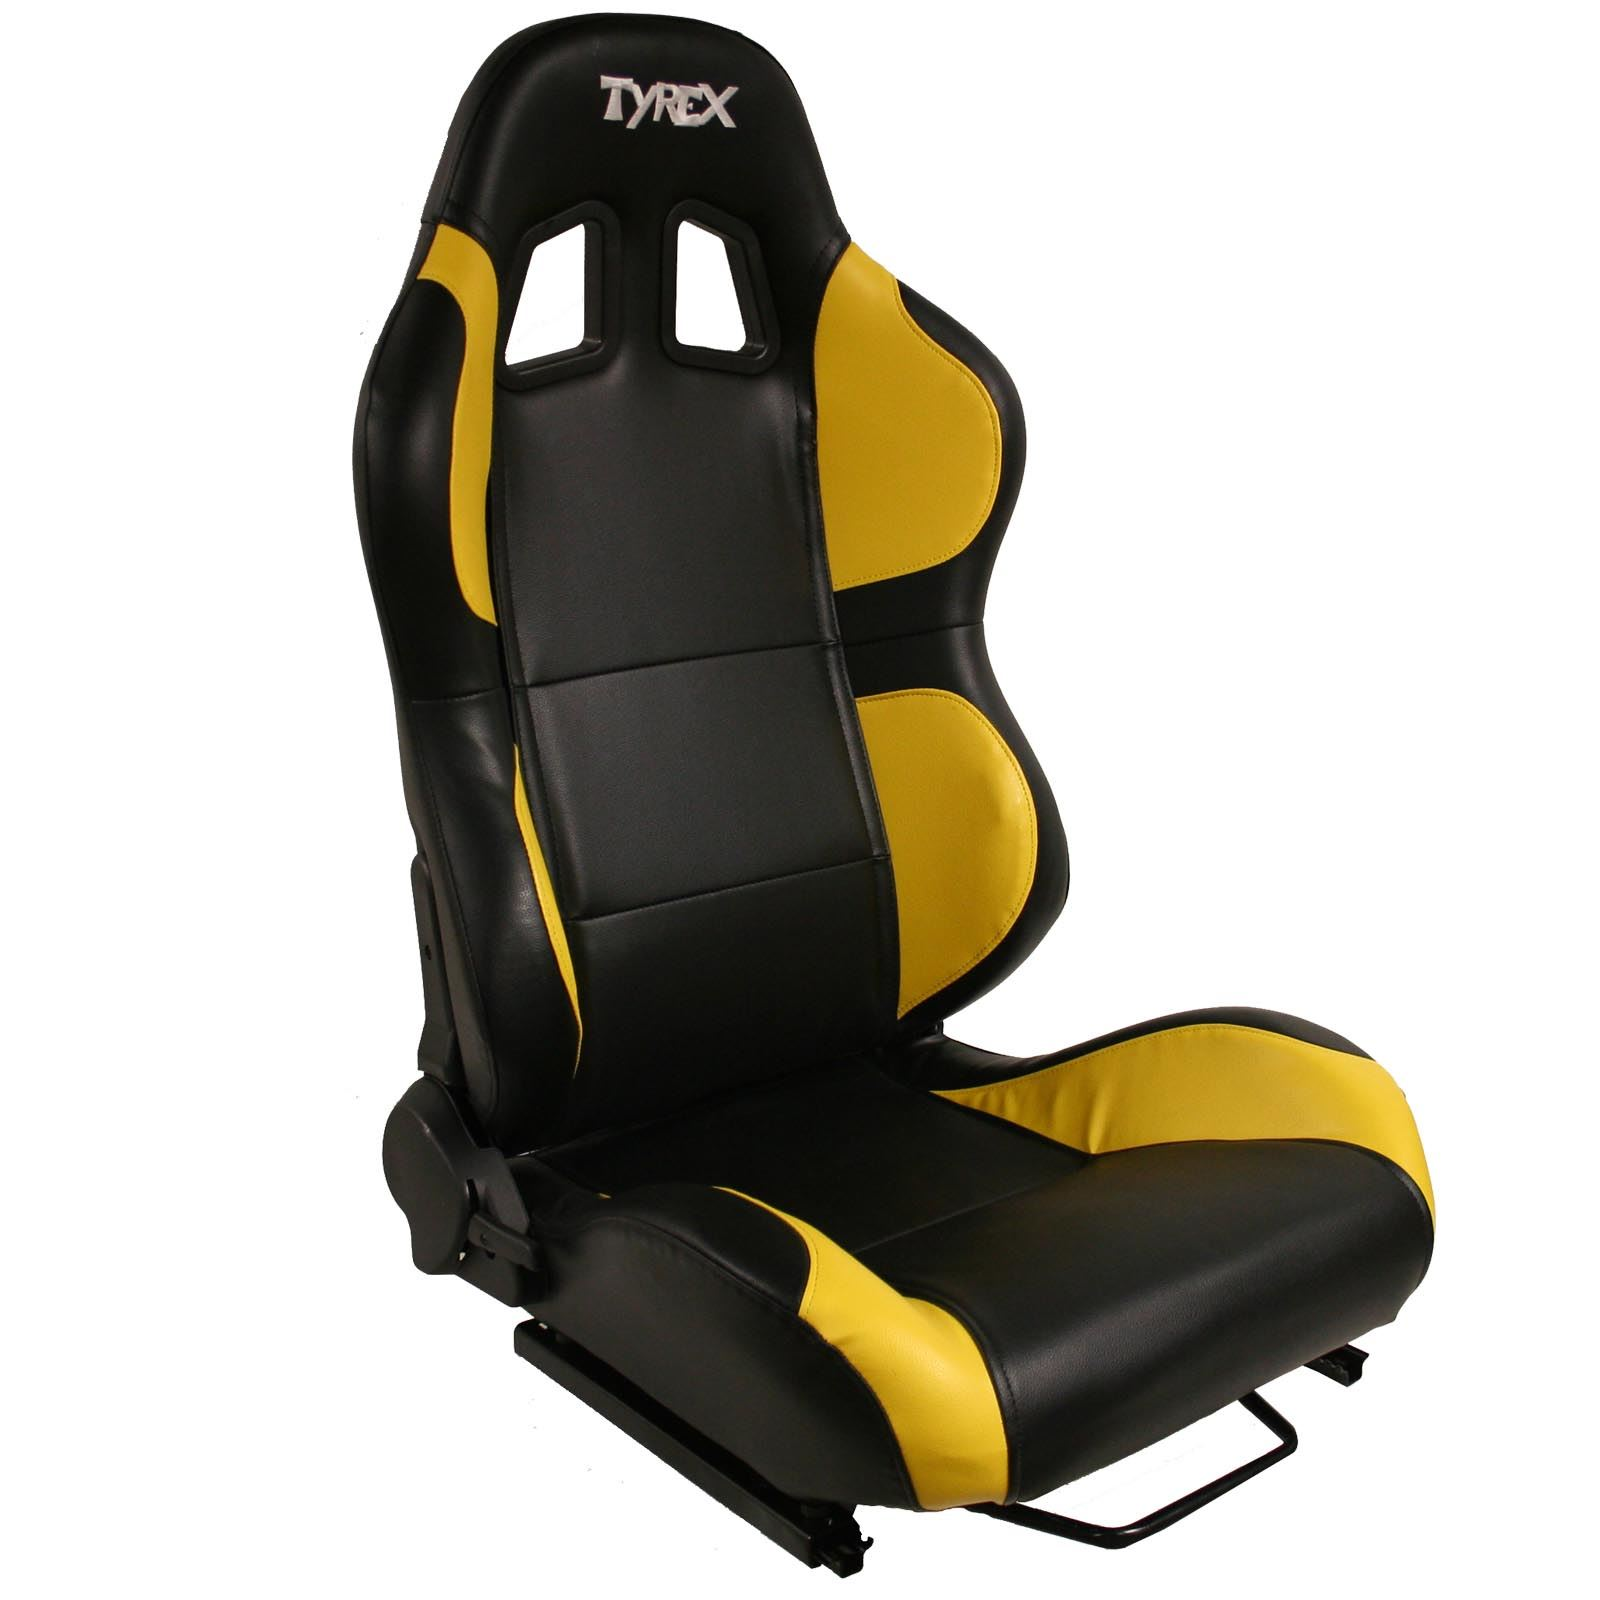 raptor 4x4 tyrex sports bucket seat black and yellow faux leather off road race ebay. Black Bedroom Furniture Sets. Home Design Ideas